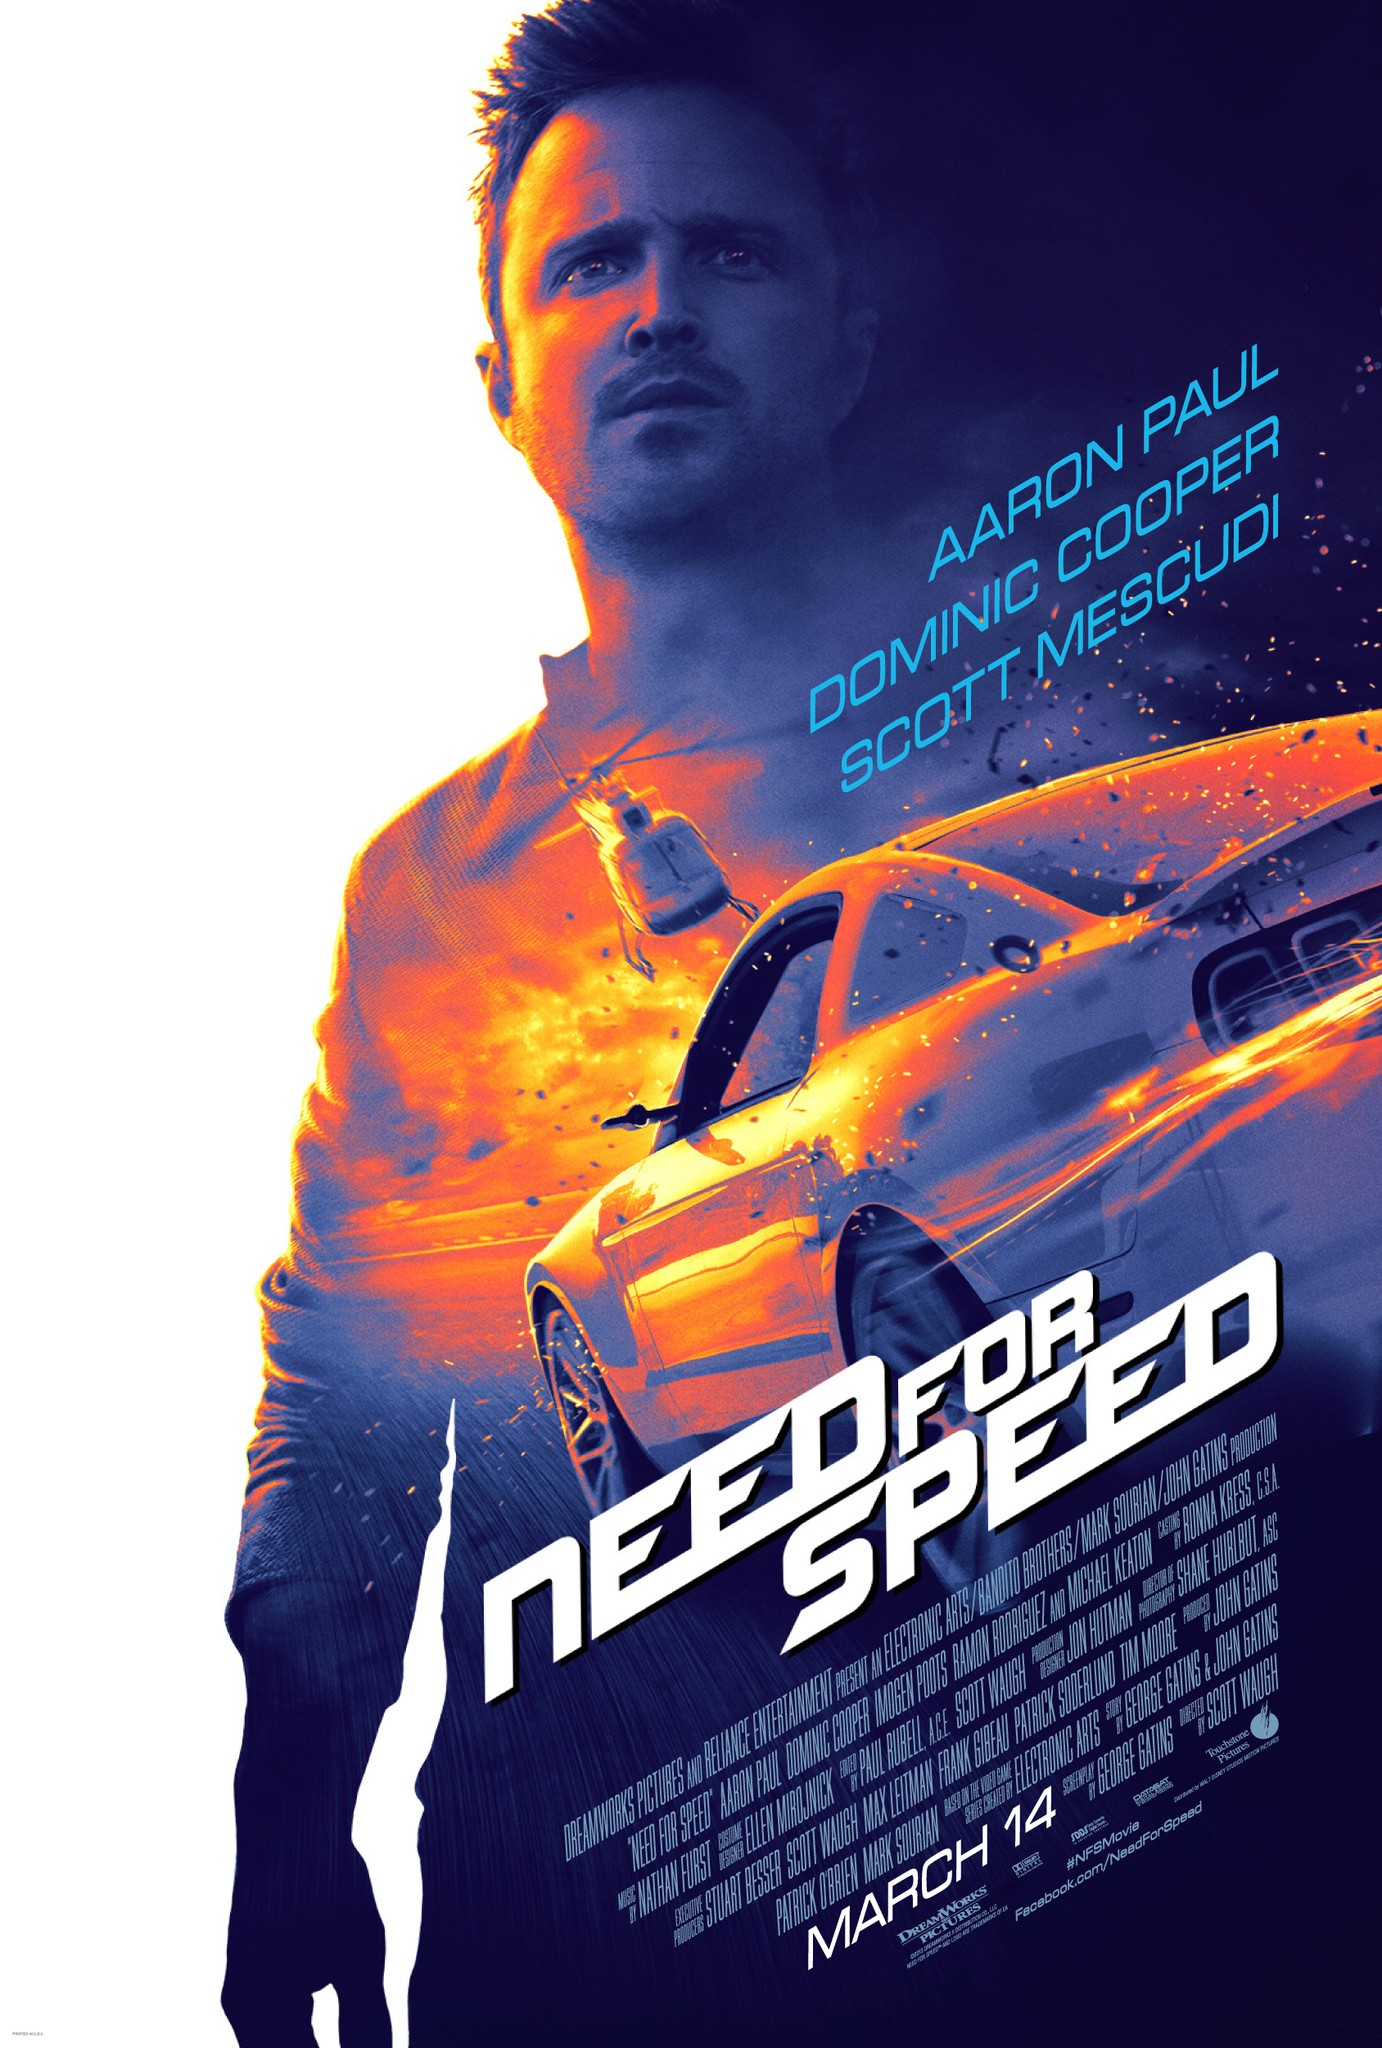 Need for Speed-Official Poster Banner PROMO POSTER XXLG-19DEZEMBRO2013